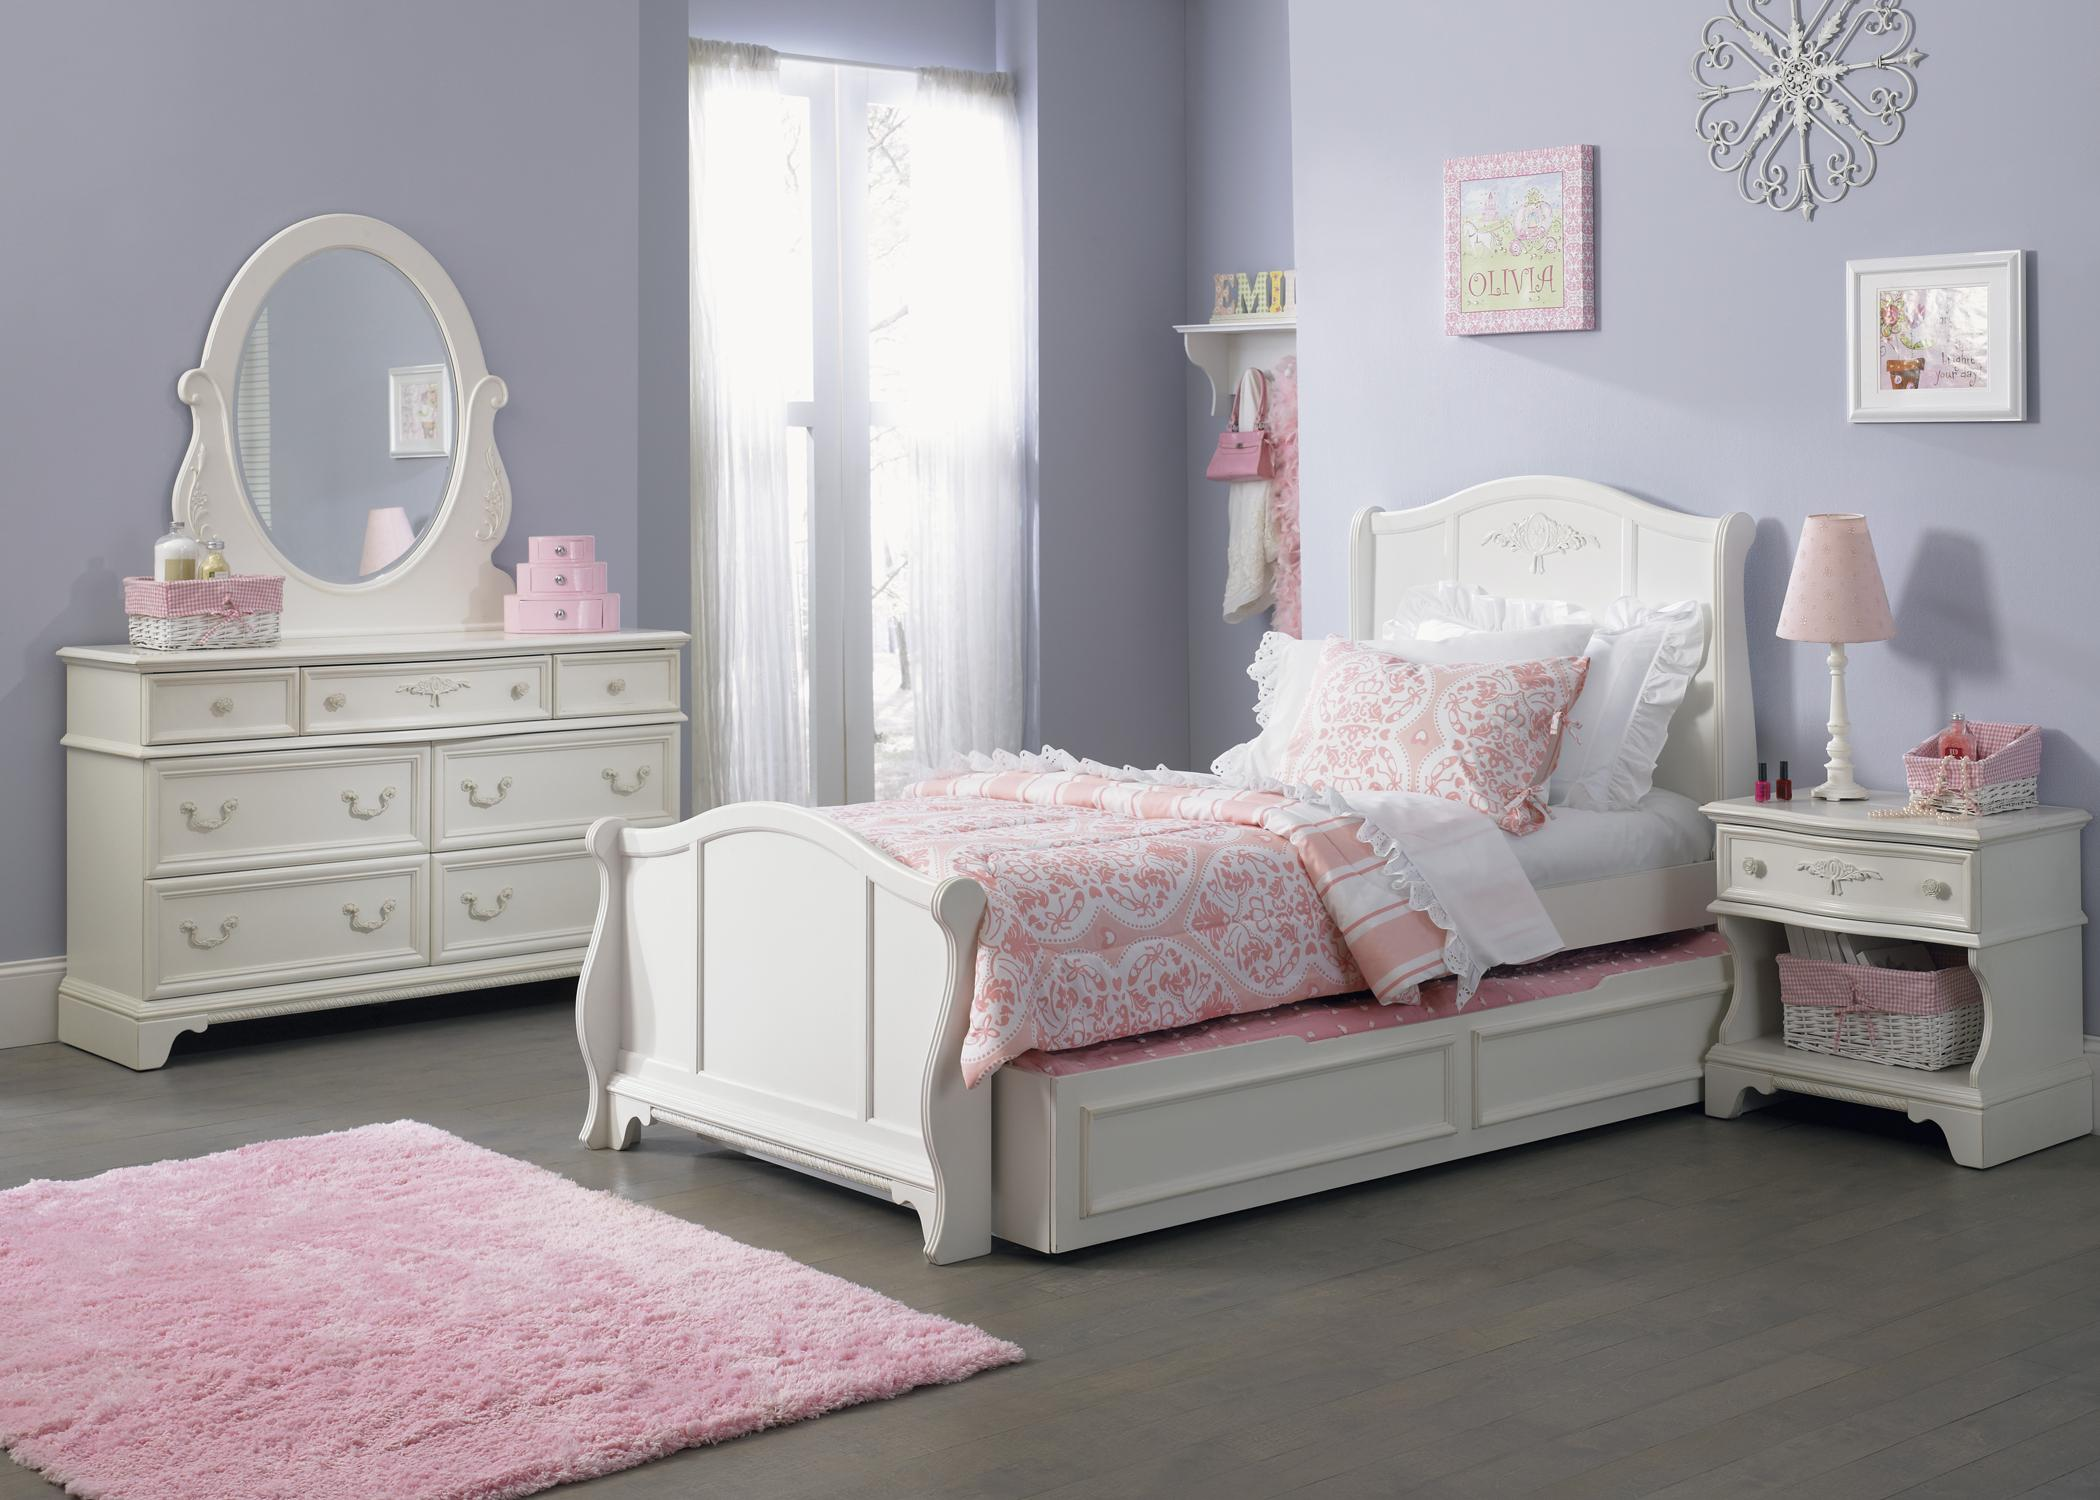 Awesome Full Sleigh Bed